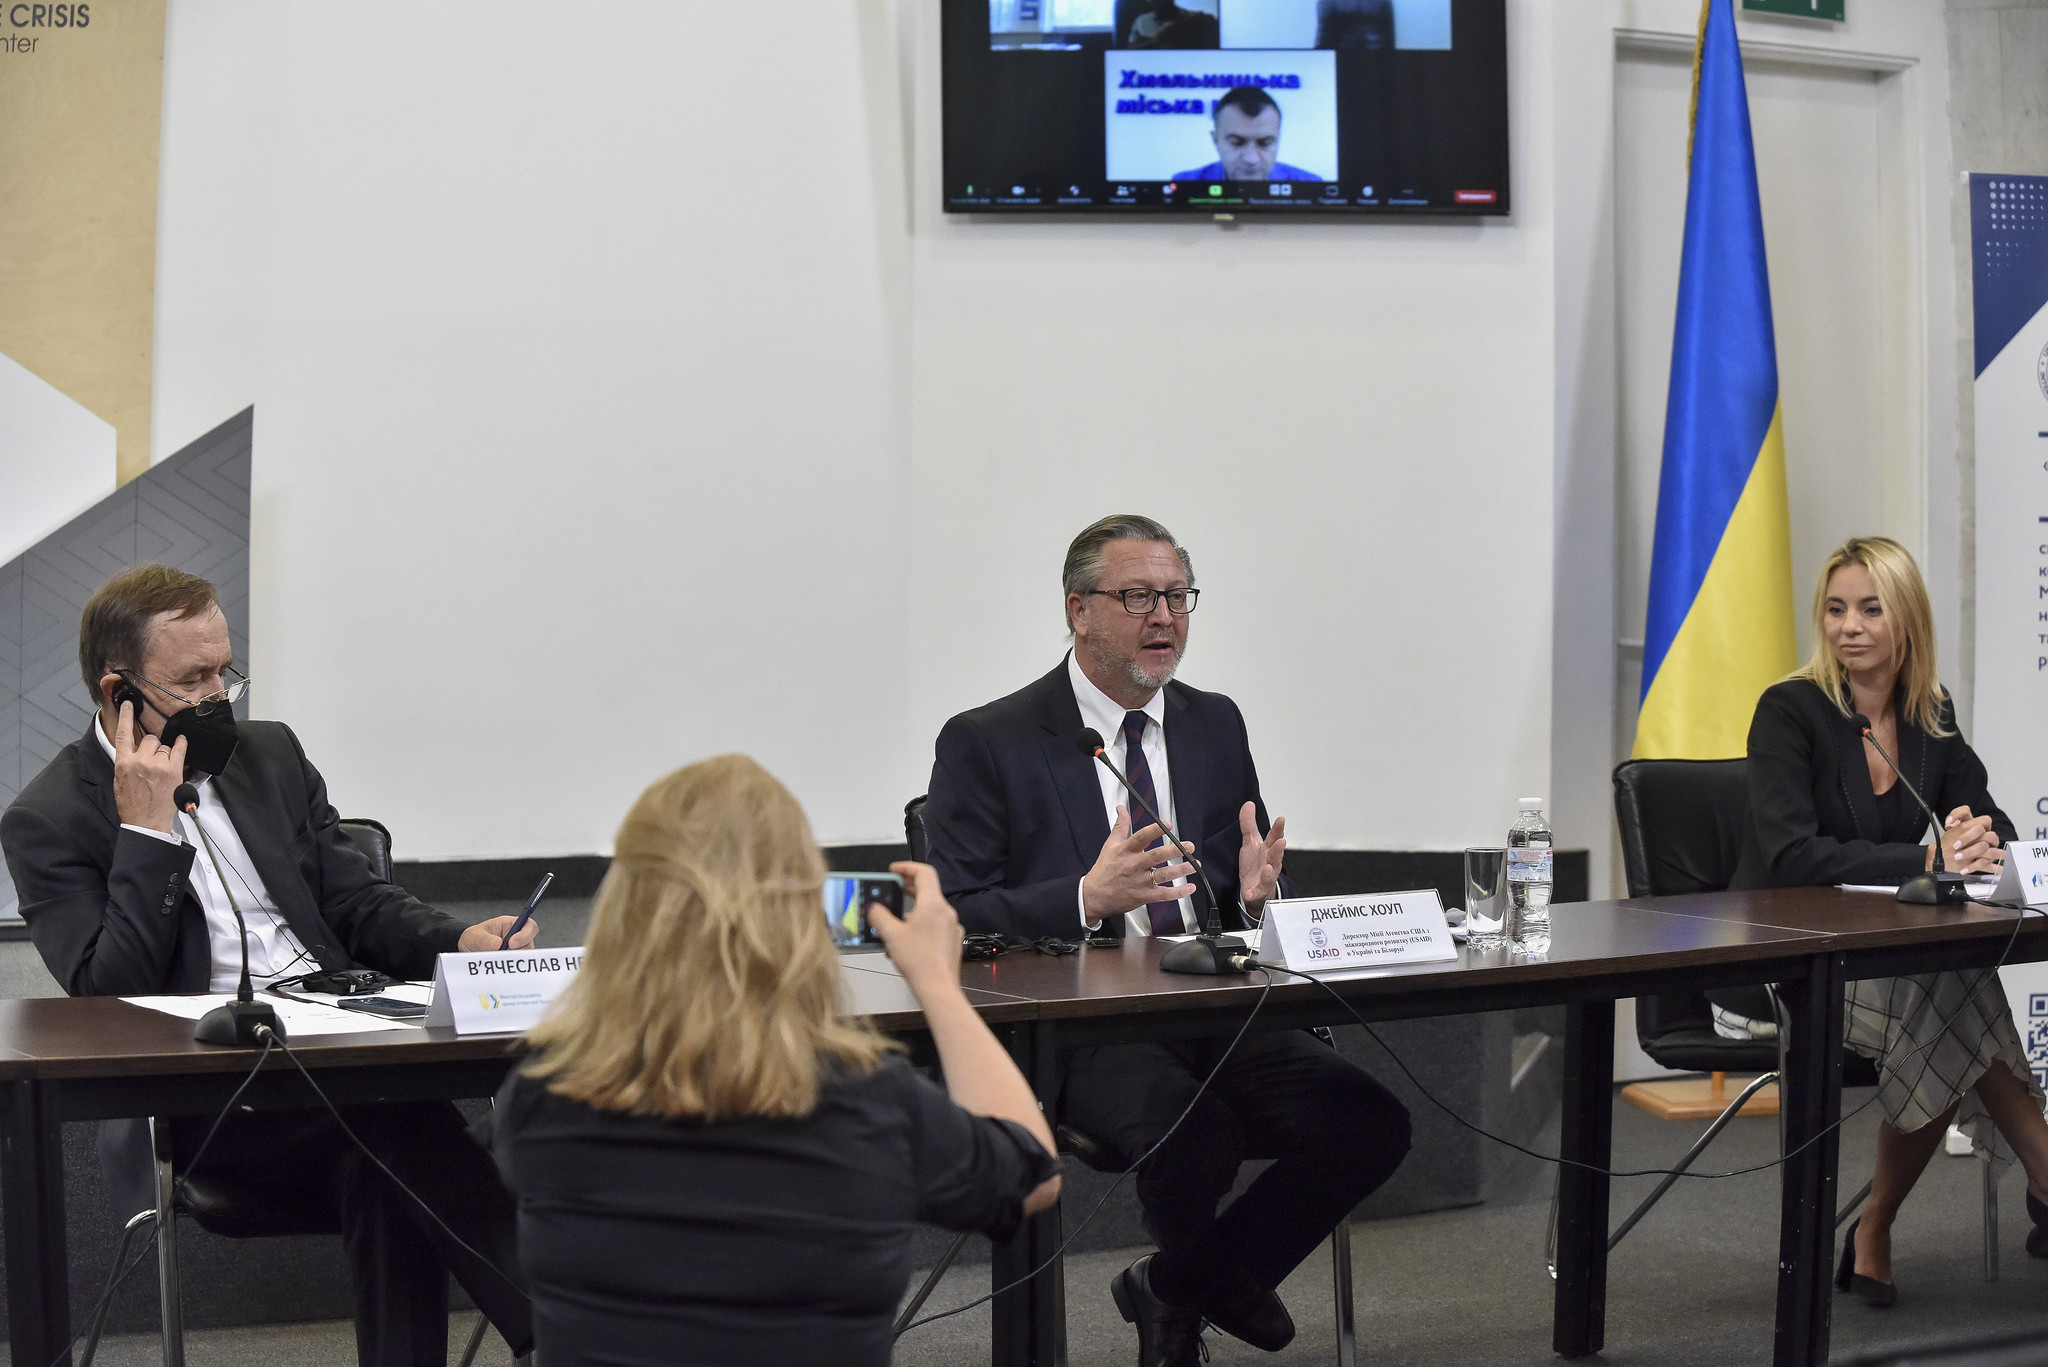 From next year all hromadas of Ukraine will become competitive, - Vyacheslav Nehoda